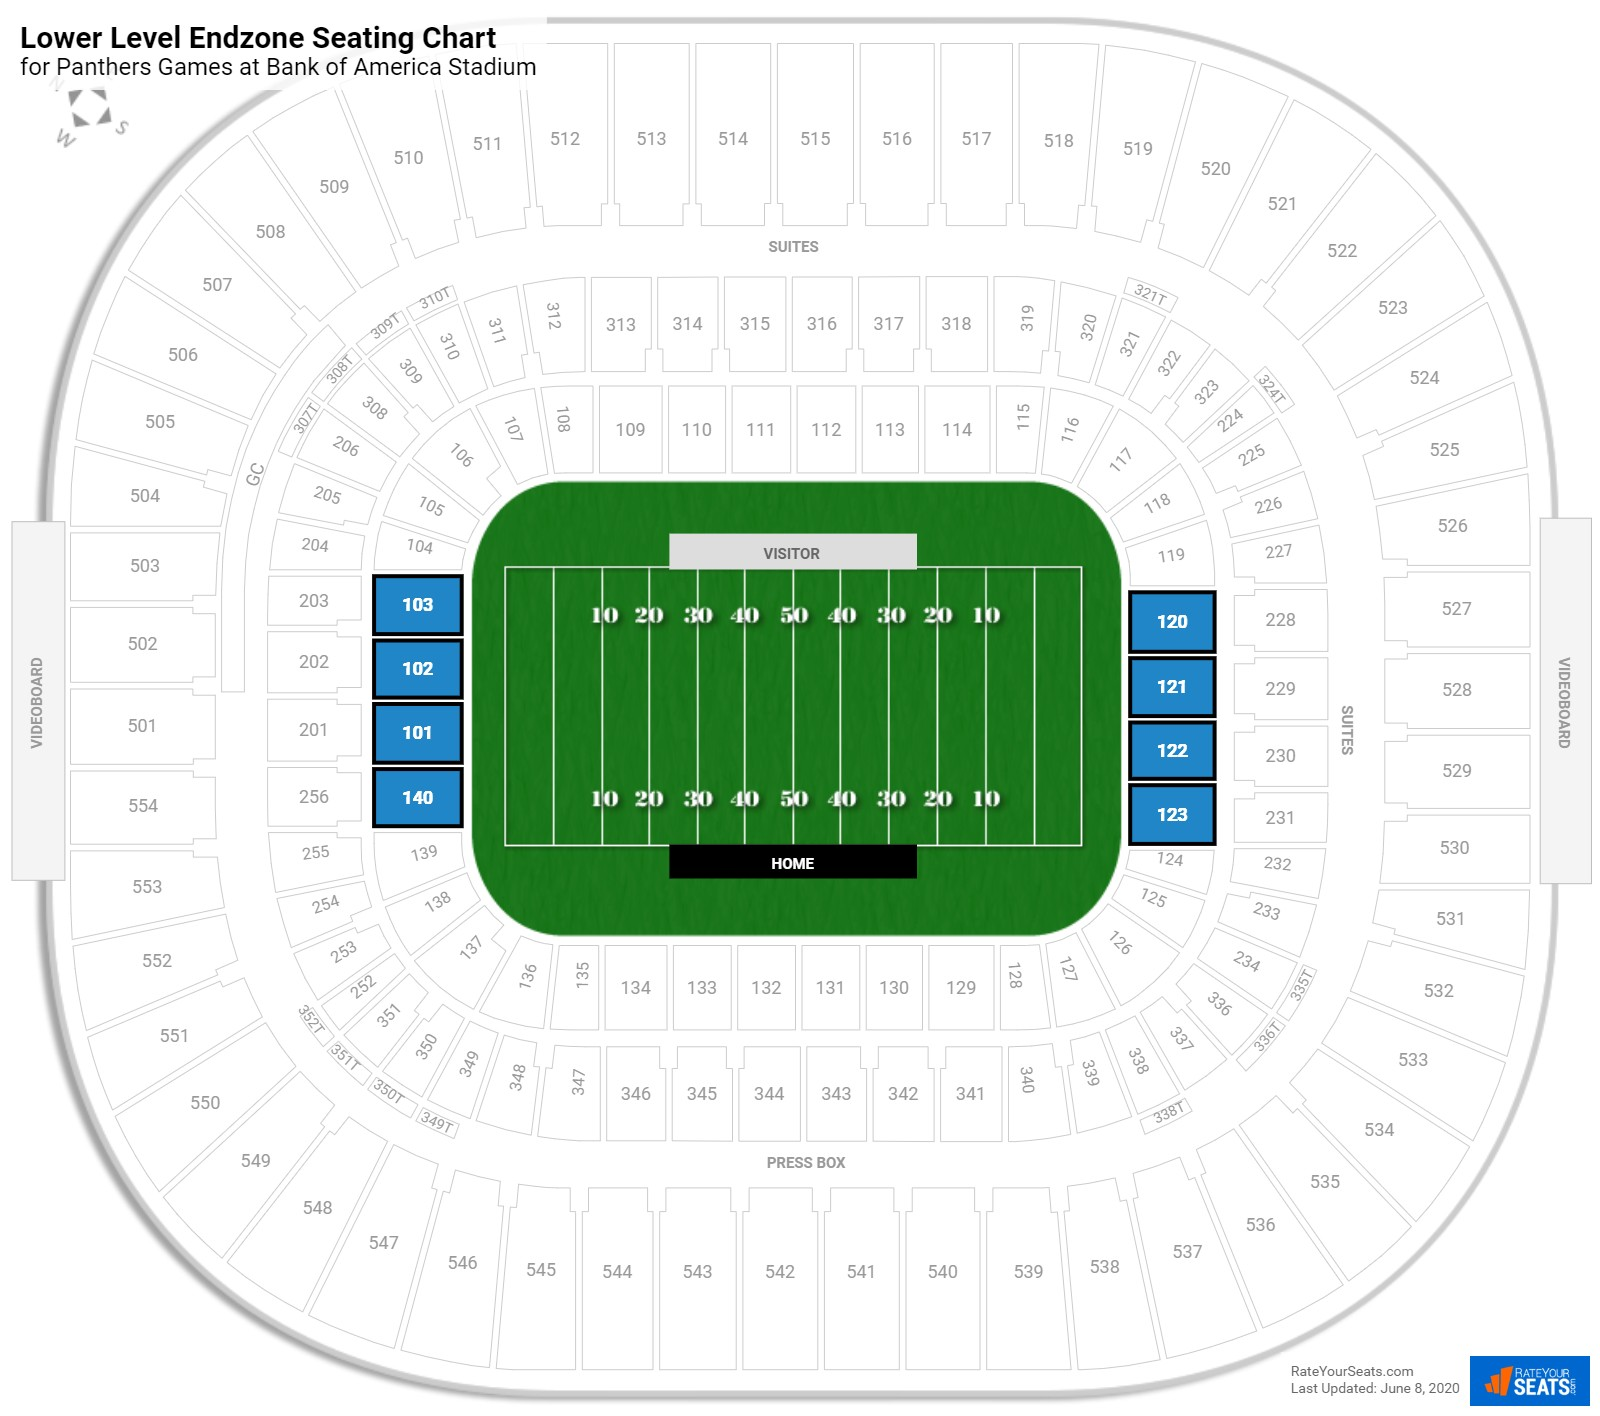 Bank of America Stadium Lower Level Endzone seating chart